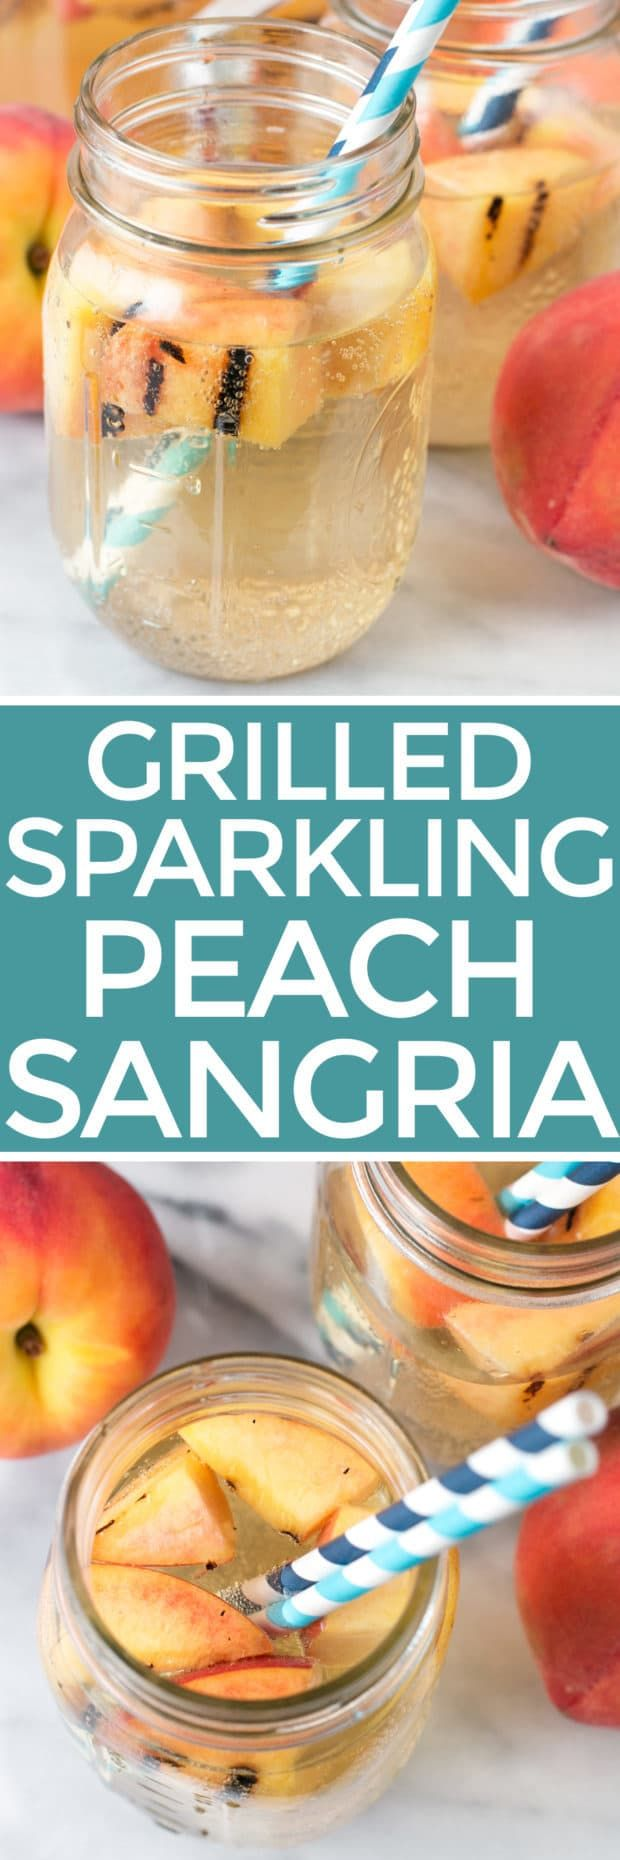 When you are in the middle of peach season, Sparkling Grilled Peach Sangria is how you do happy hour. Doesn't your end-of-day routine deserve something a little grilled, fruity and bubbly? The answer is yes, yes it DOES. Sparkling Grilled Peach Sangria | cakenknife.com #peaches #summer #cocktail